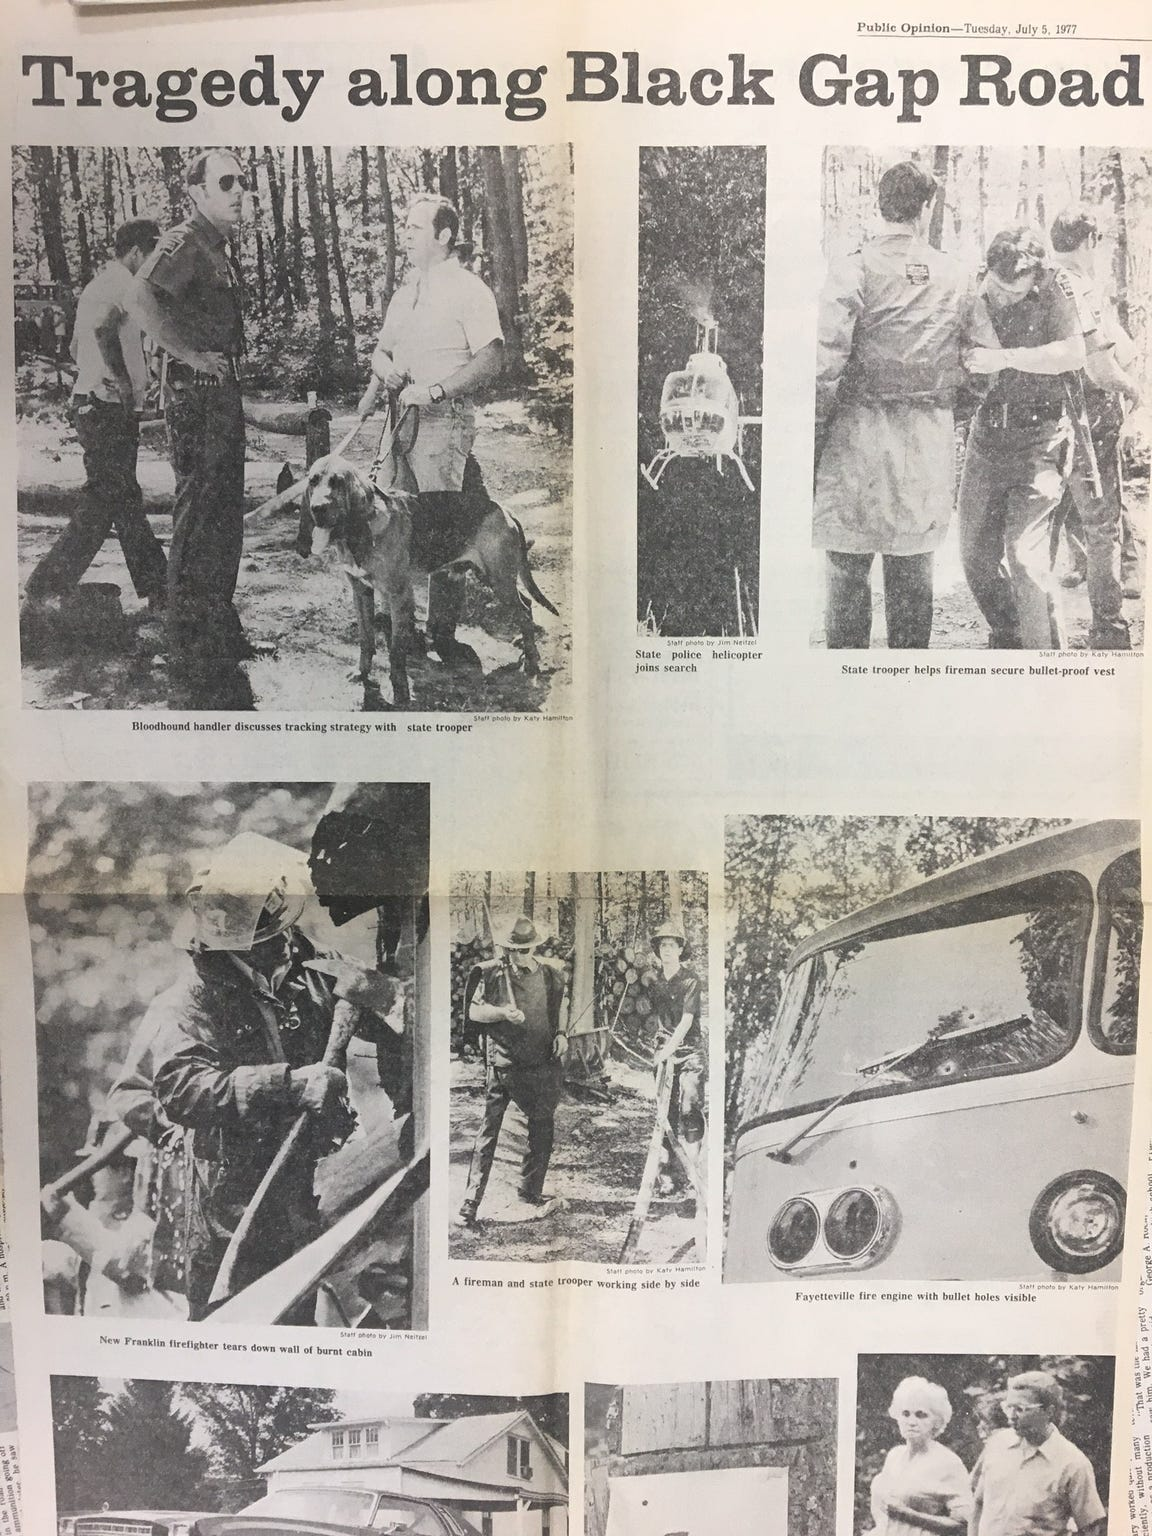 Public Opinion devoted four pages on July 5, 1977, to the July 2 shooting. The newspaper did not publish on Sunday or the holiday.